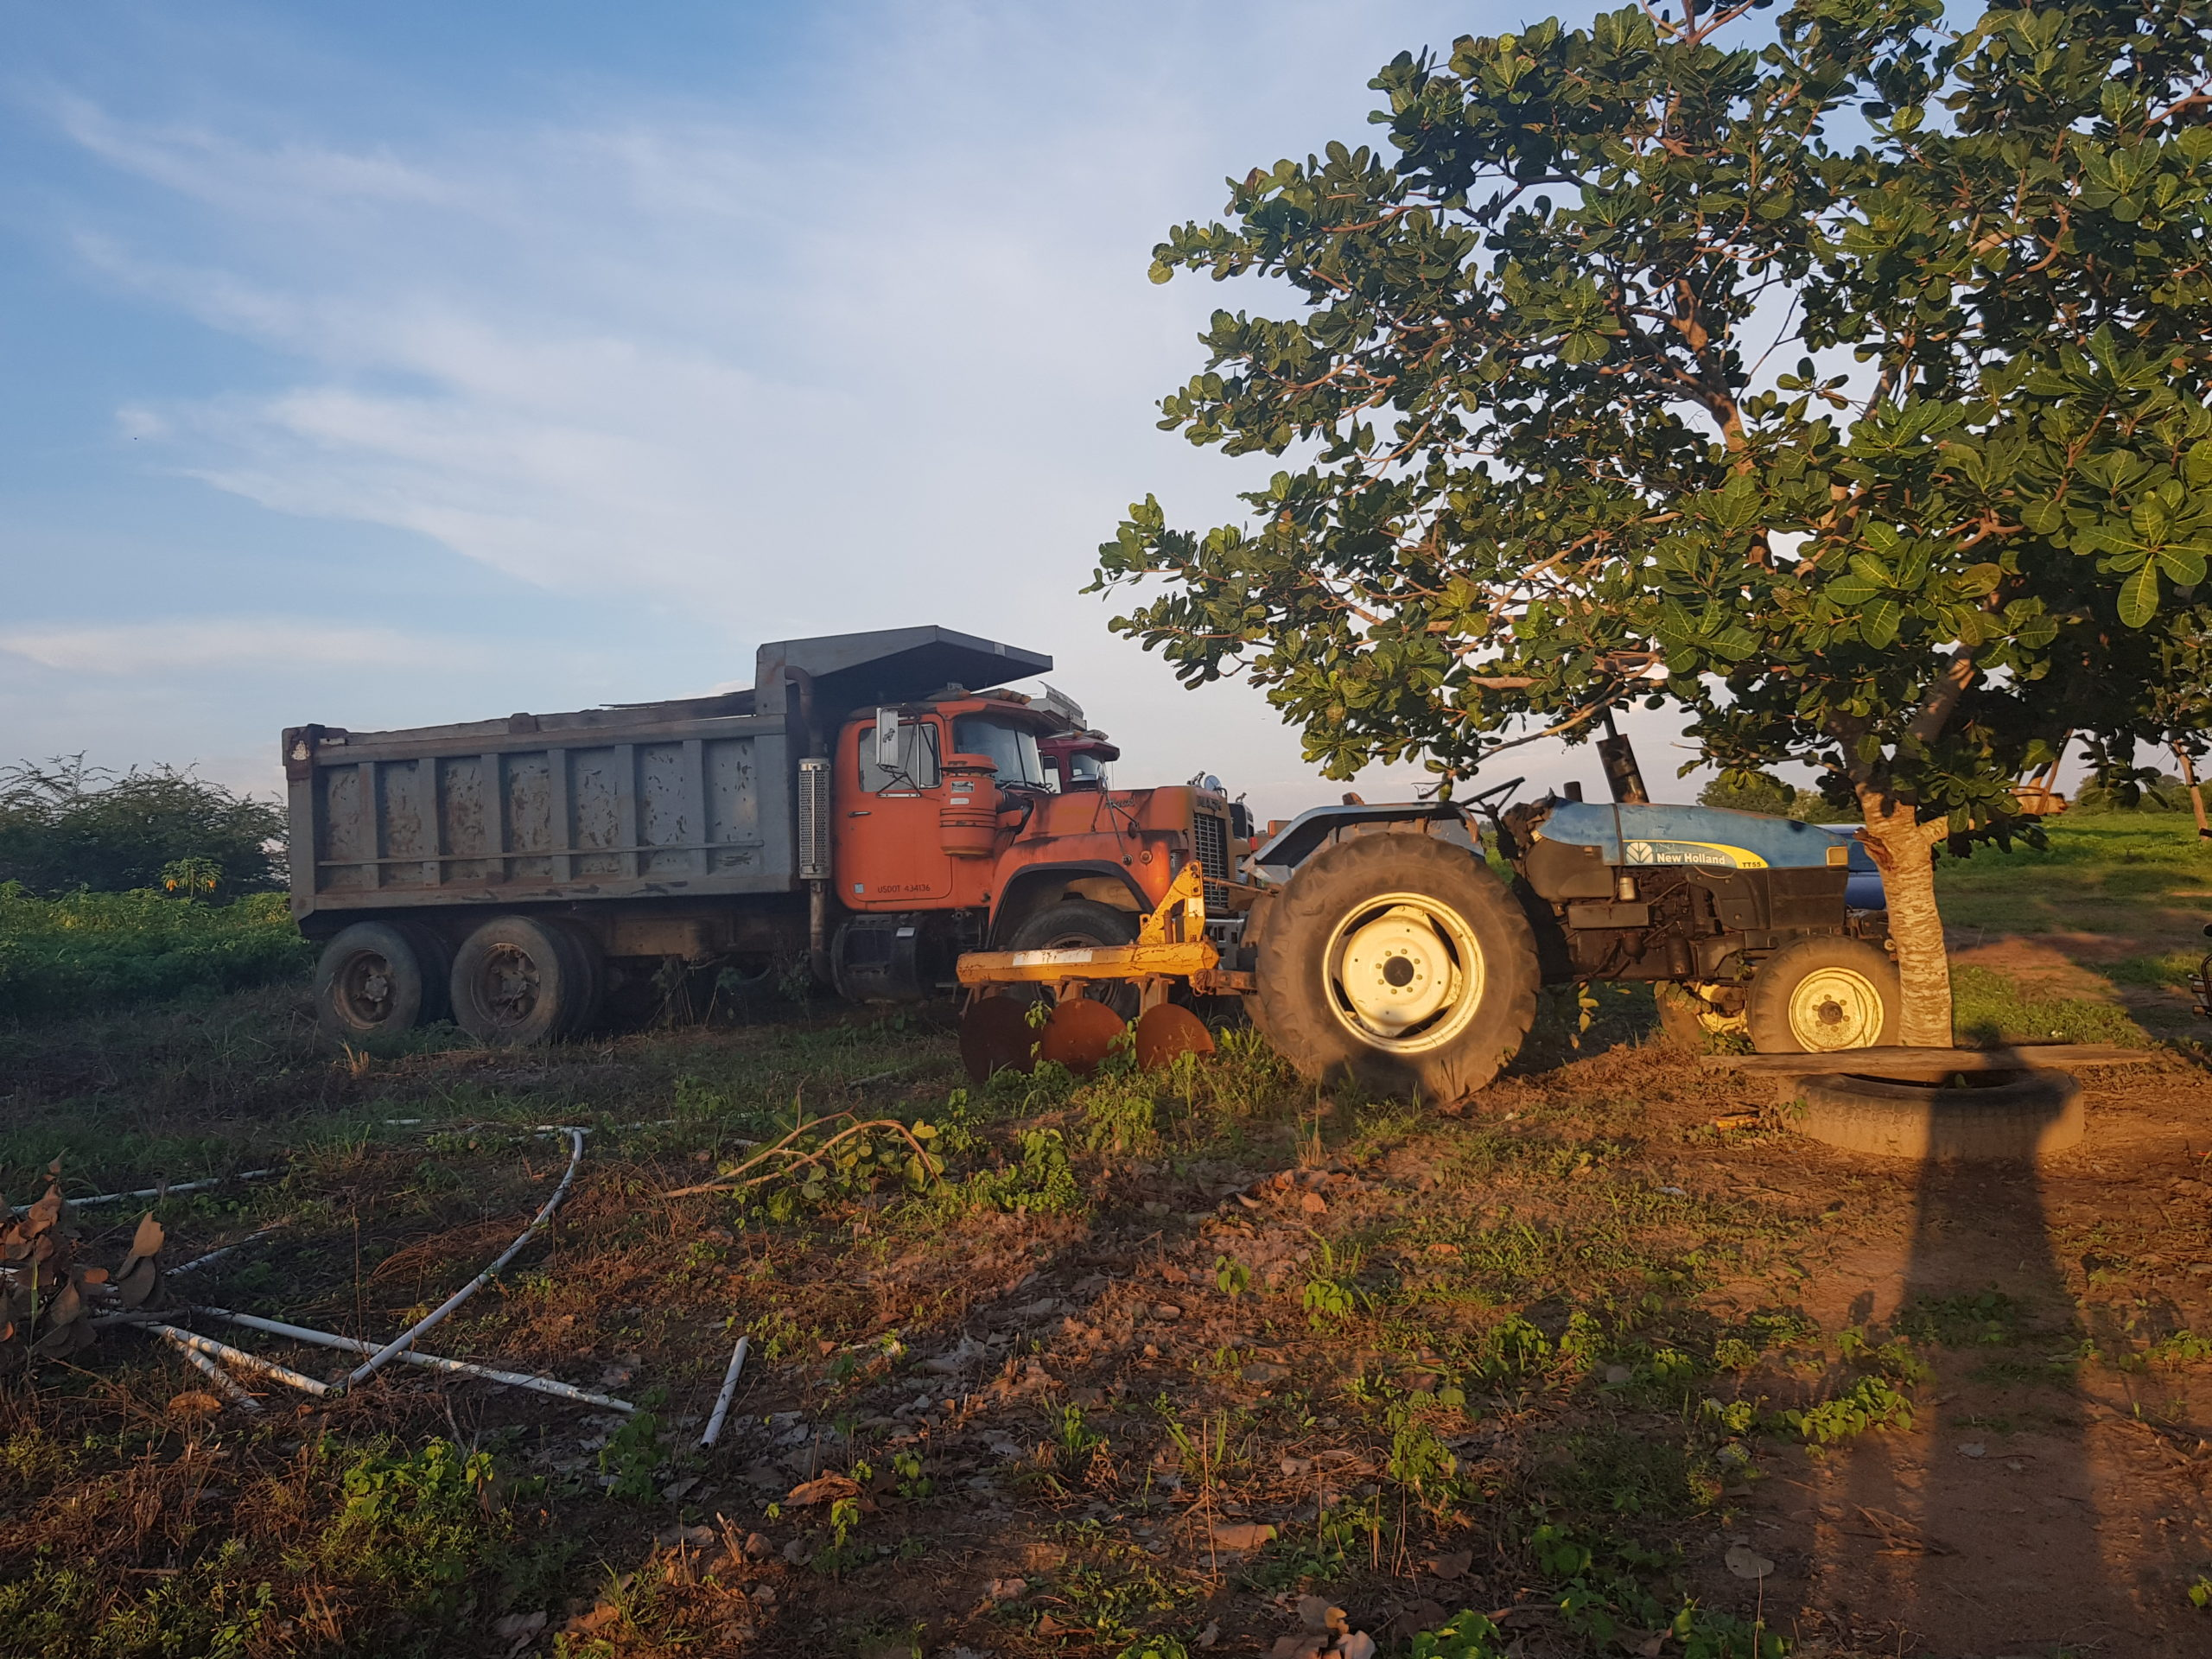 Abandoned trucks by contractors at Asa Earth Dam, Iwofin,Oyo State.